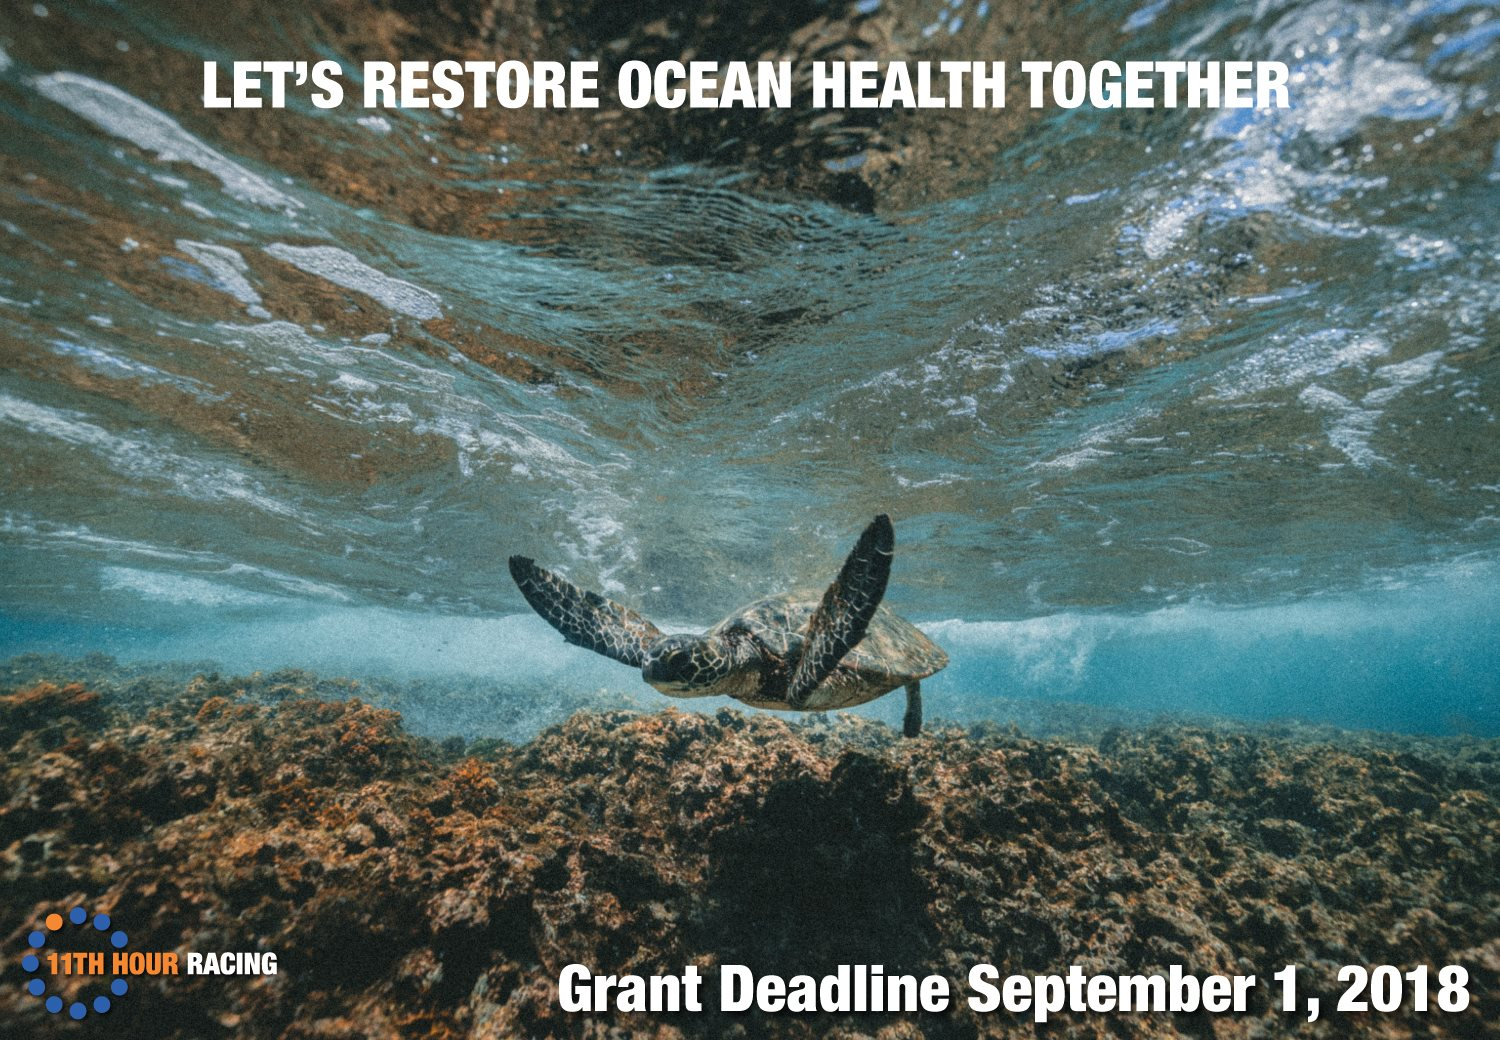 Grant application: Improving Ocean Health through Sailing, Innovation and Stewardship (11th Hour Racing)